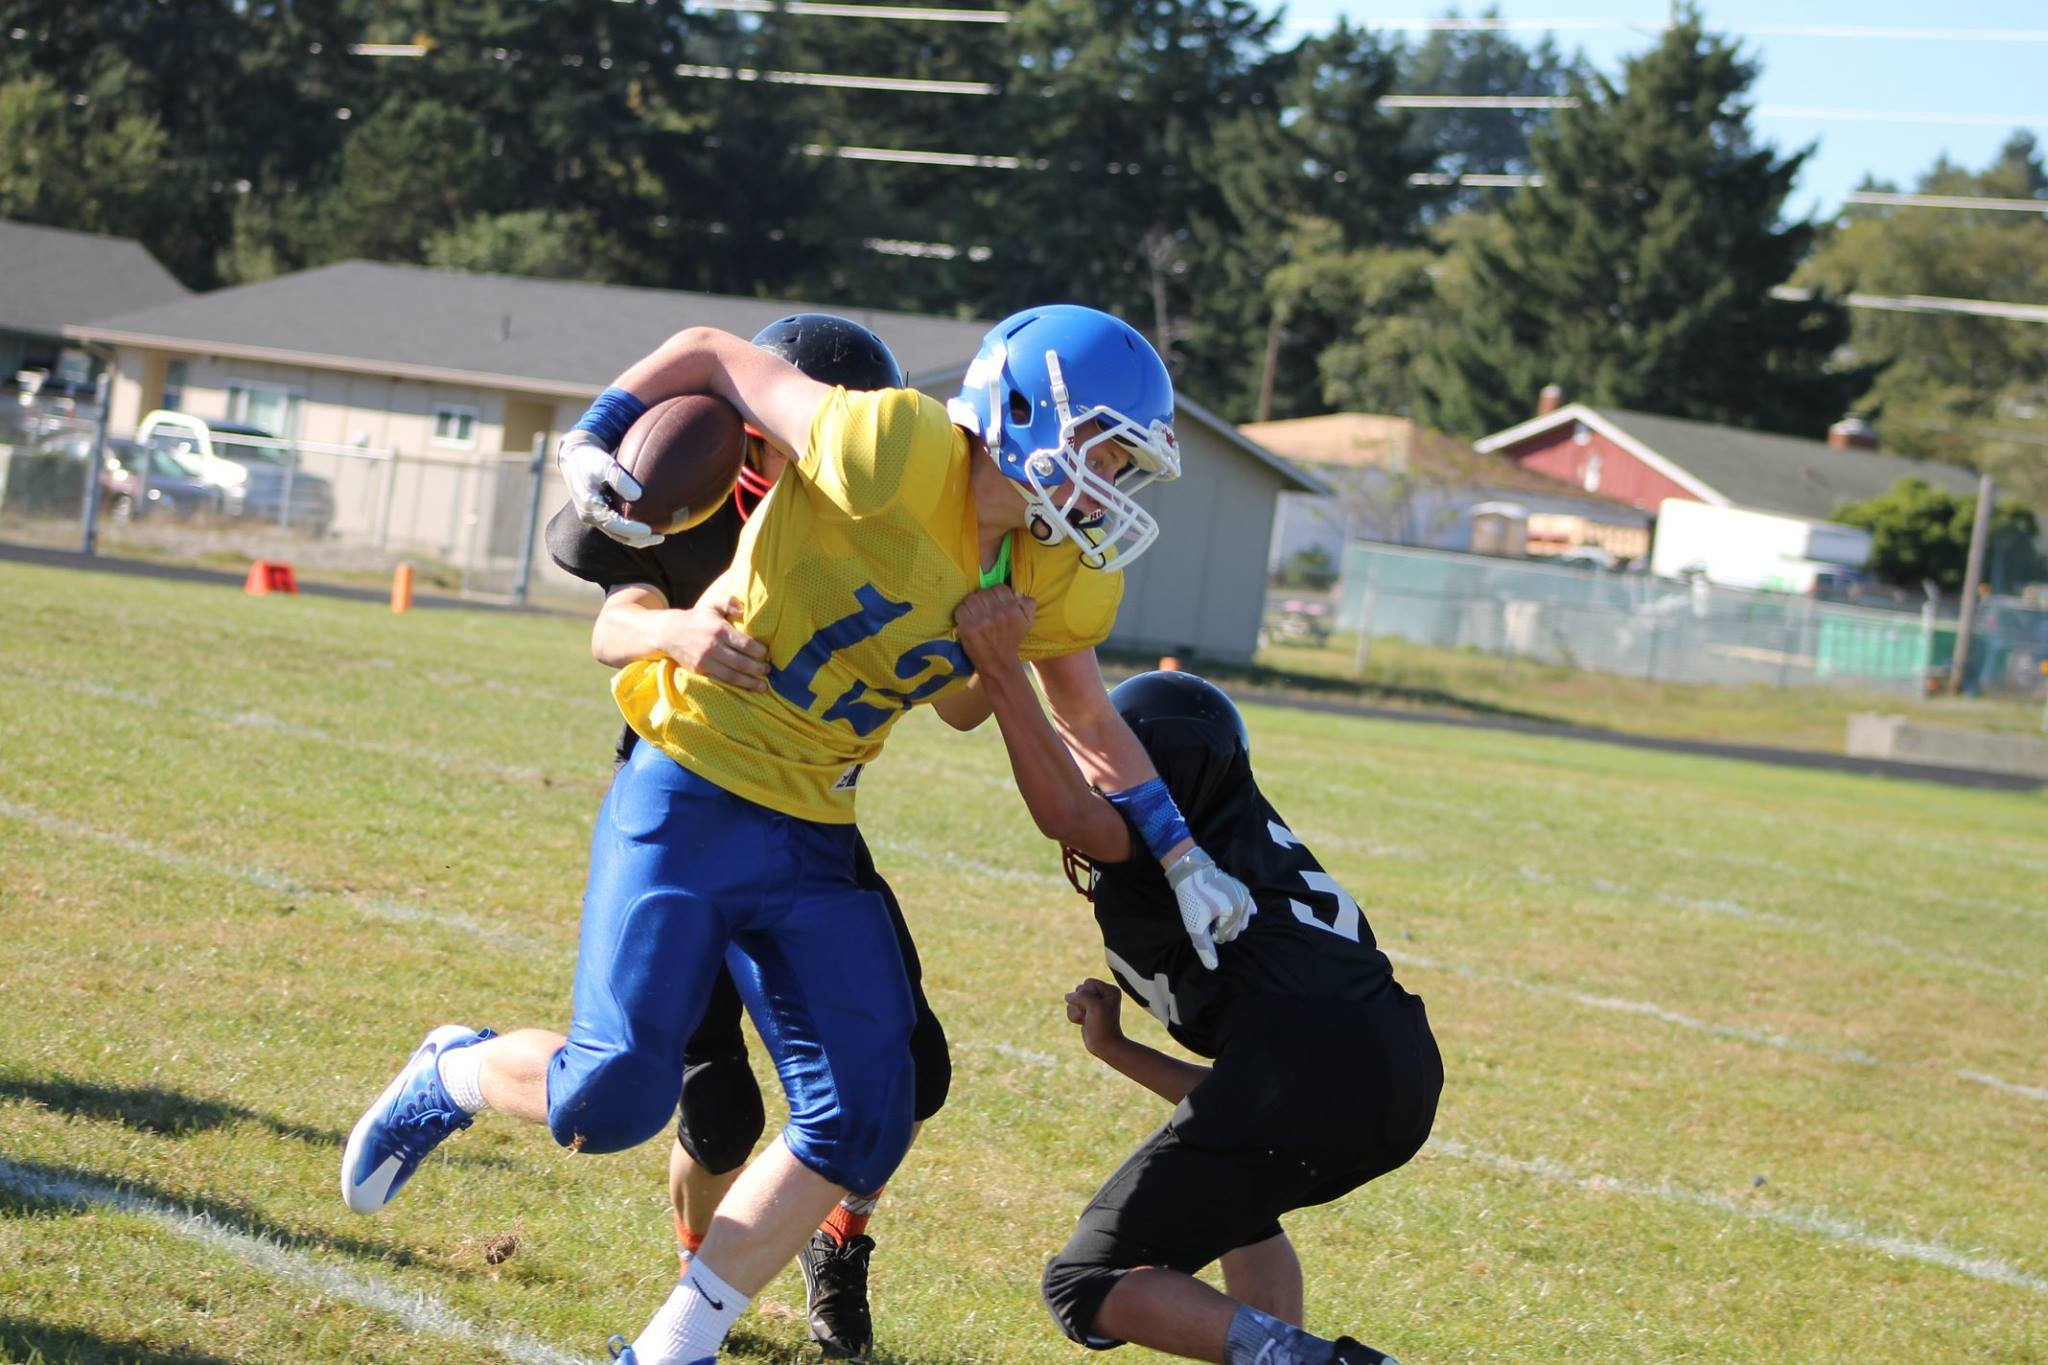 8th grader Camp Lacouture. Camp is a superior athlete from Suislaw Middle School in Florence. (Submitted Photo)